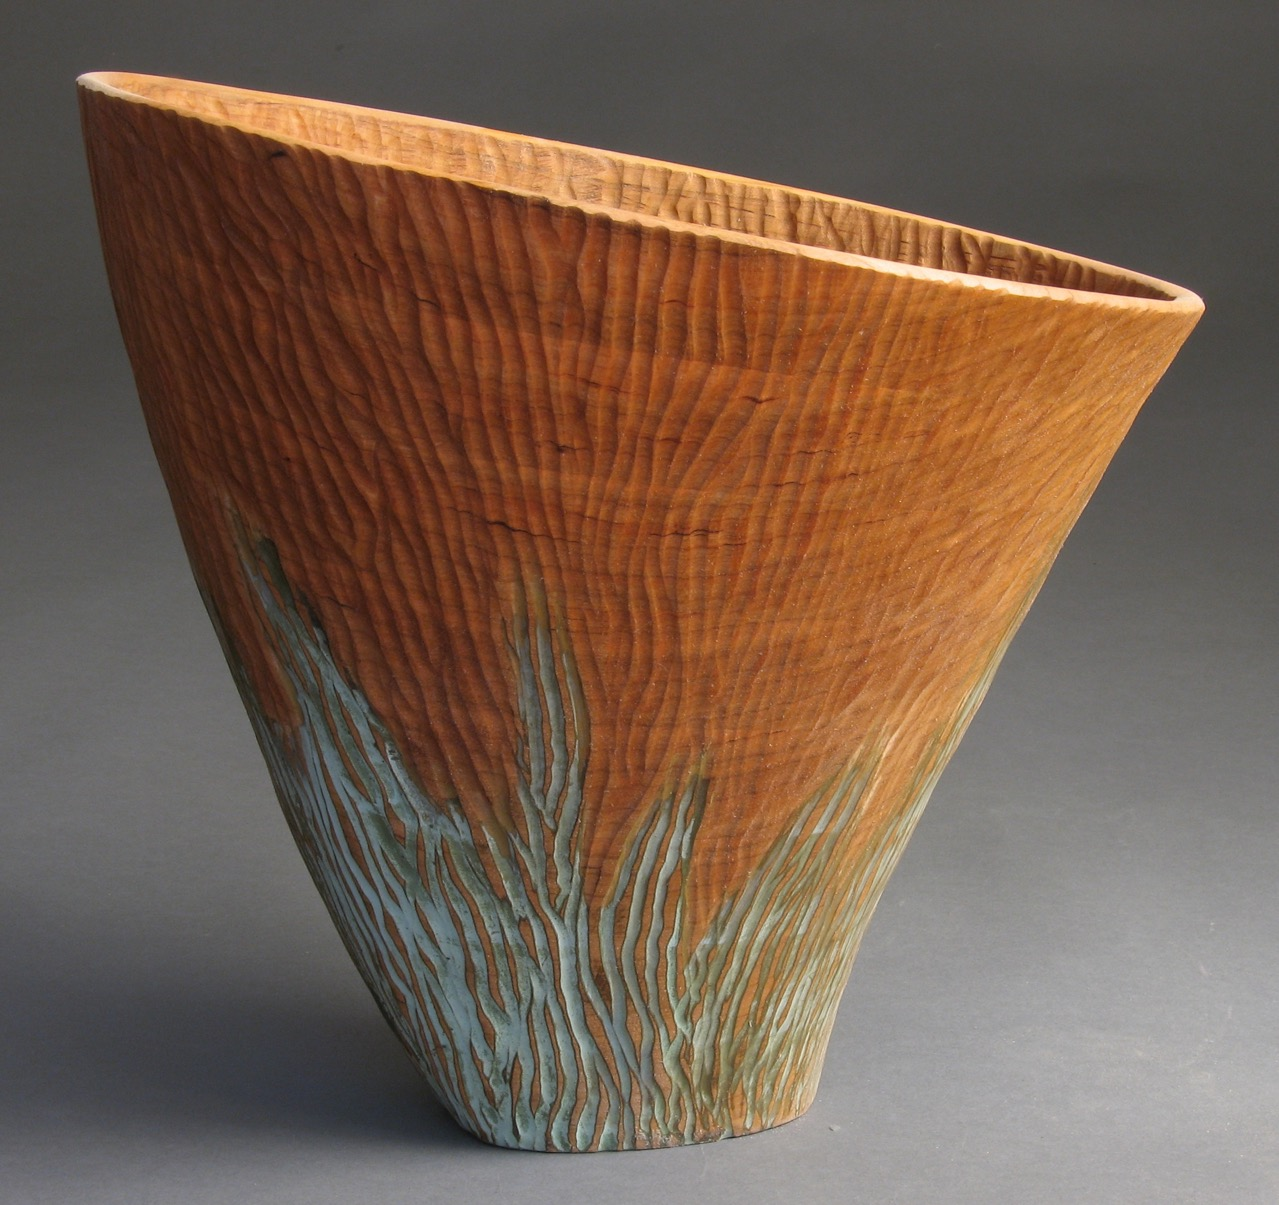 Michael Bauermeister rain arc vessel linden wood tinted lacquer carved totem urn decorative texture vase Sherrie Gallerie Short North Art Gallery Columbus Ohio